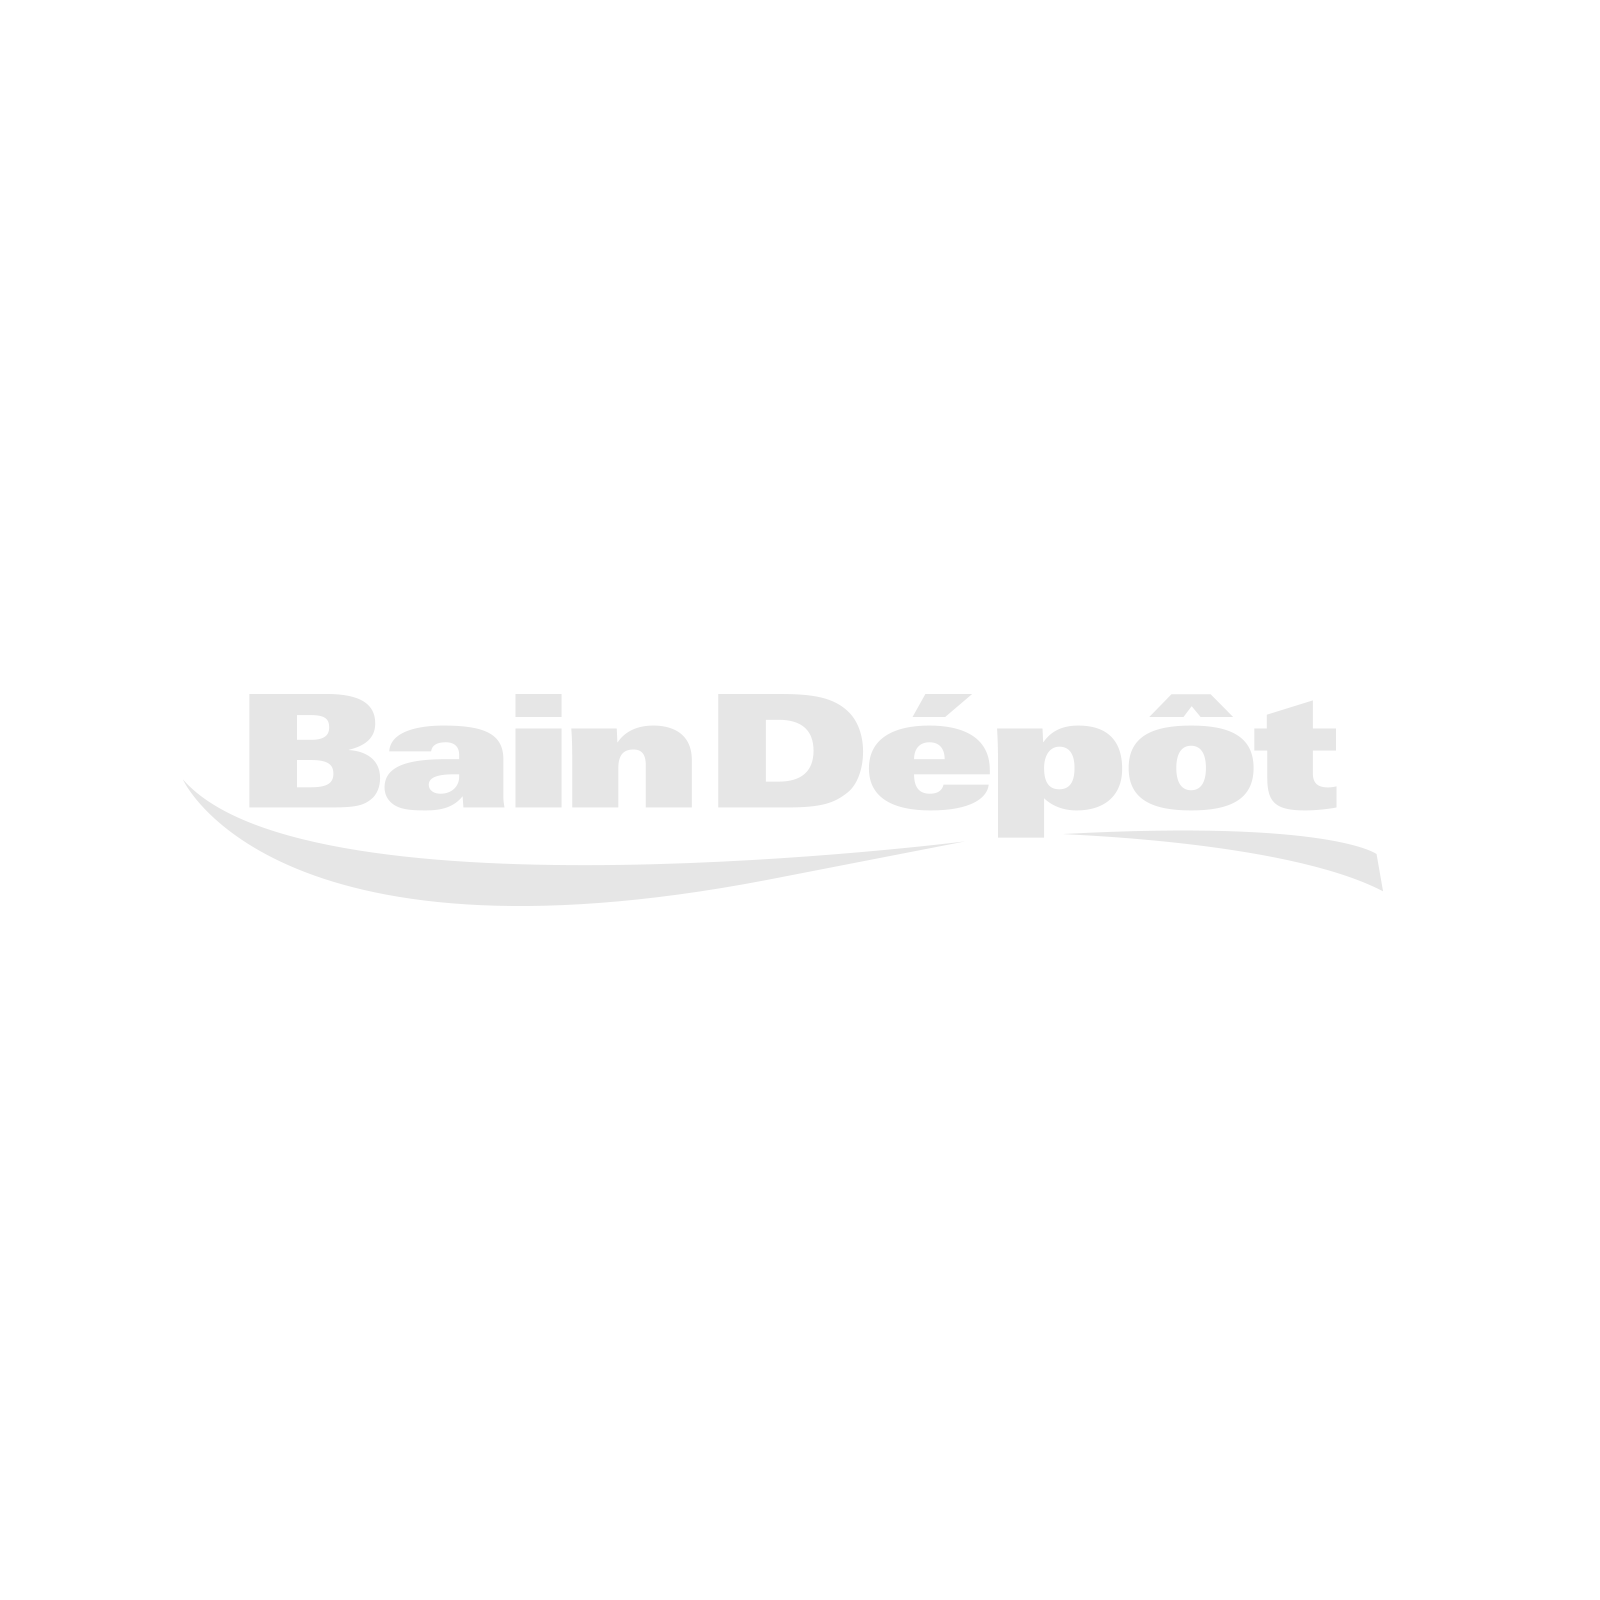 DUO Double black granite composite kitchen sink with black faucet